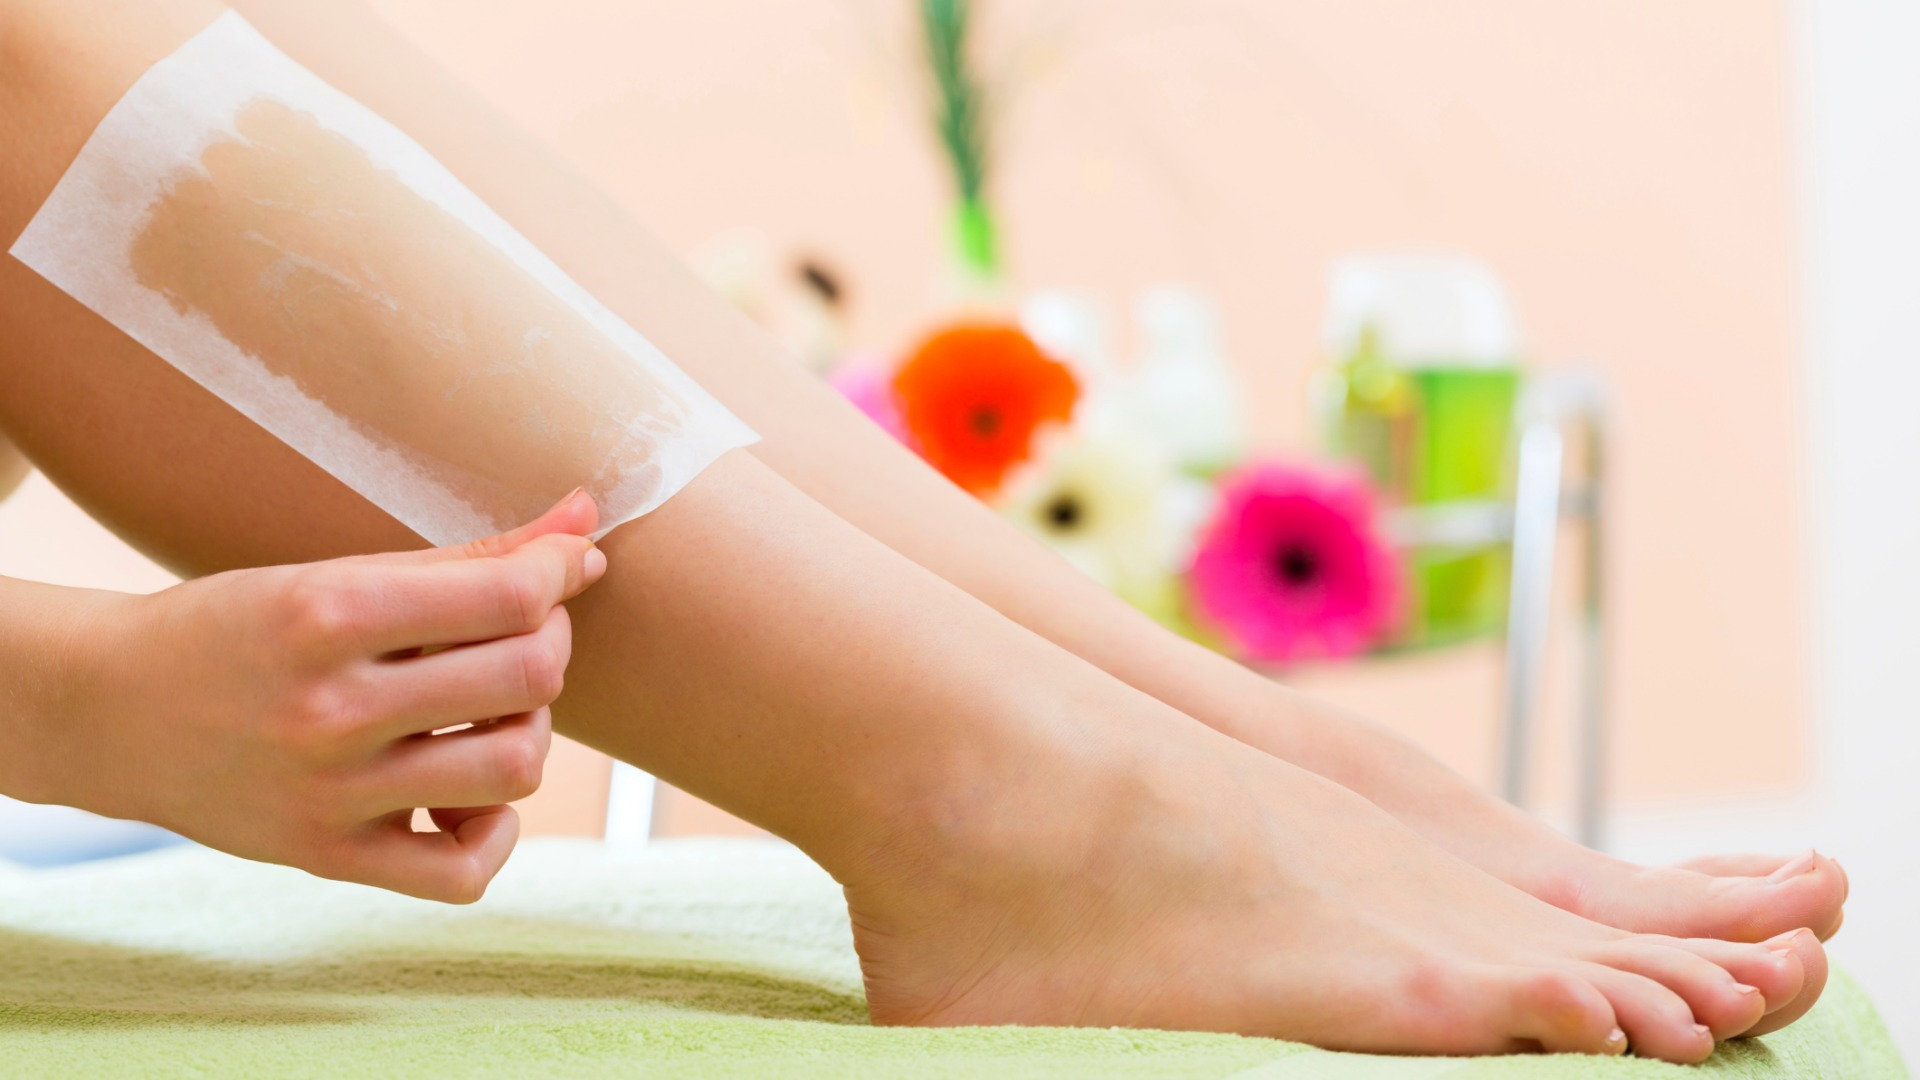 Waxing is a popular hair removal method